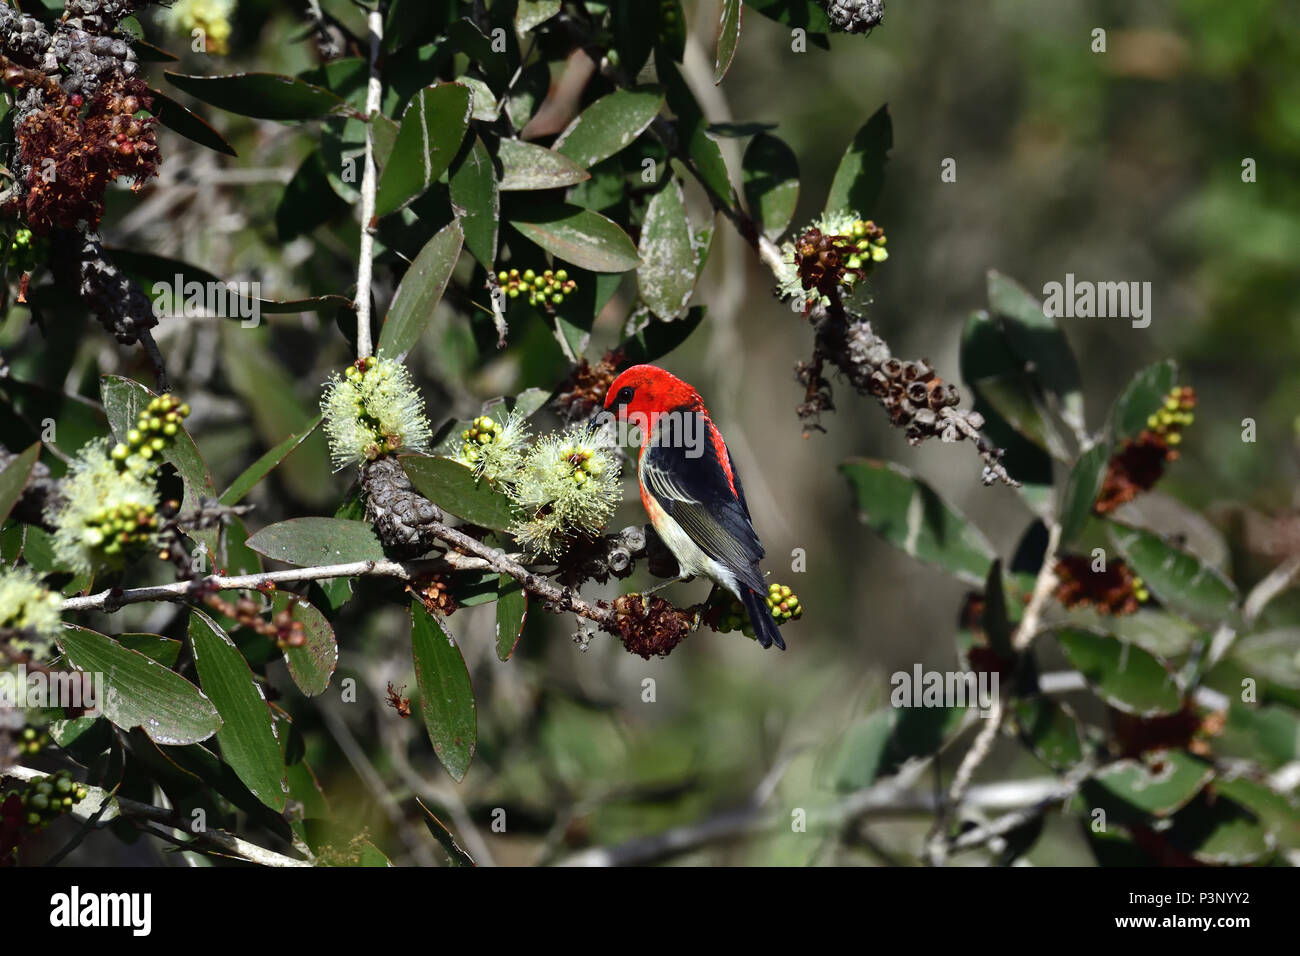 An Australian, Queensland Male Scarlet Honeyeater ( Myzomela sanguinolenta ) feeding on a Bottlebrush tree - Stock Image